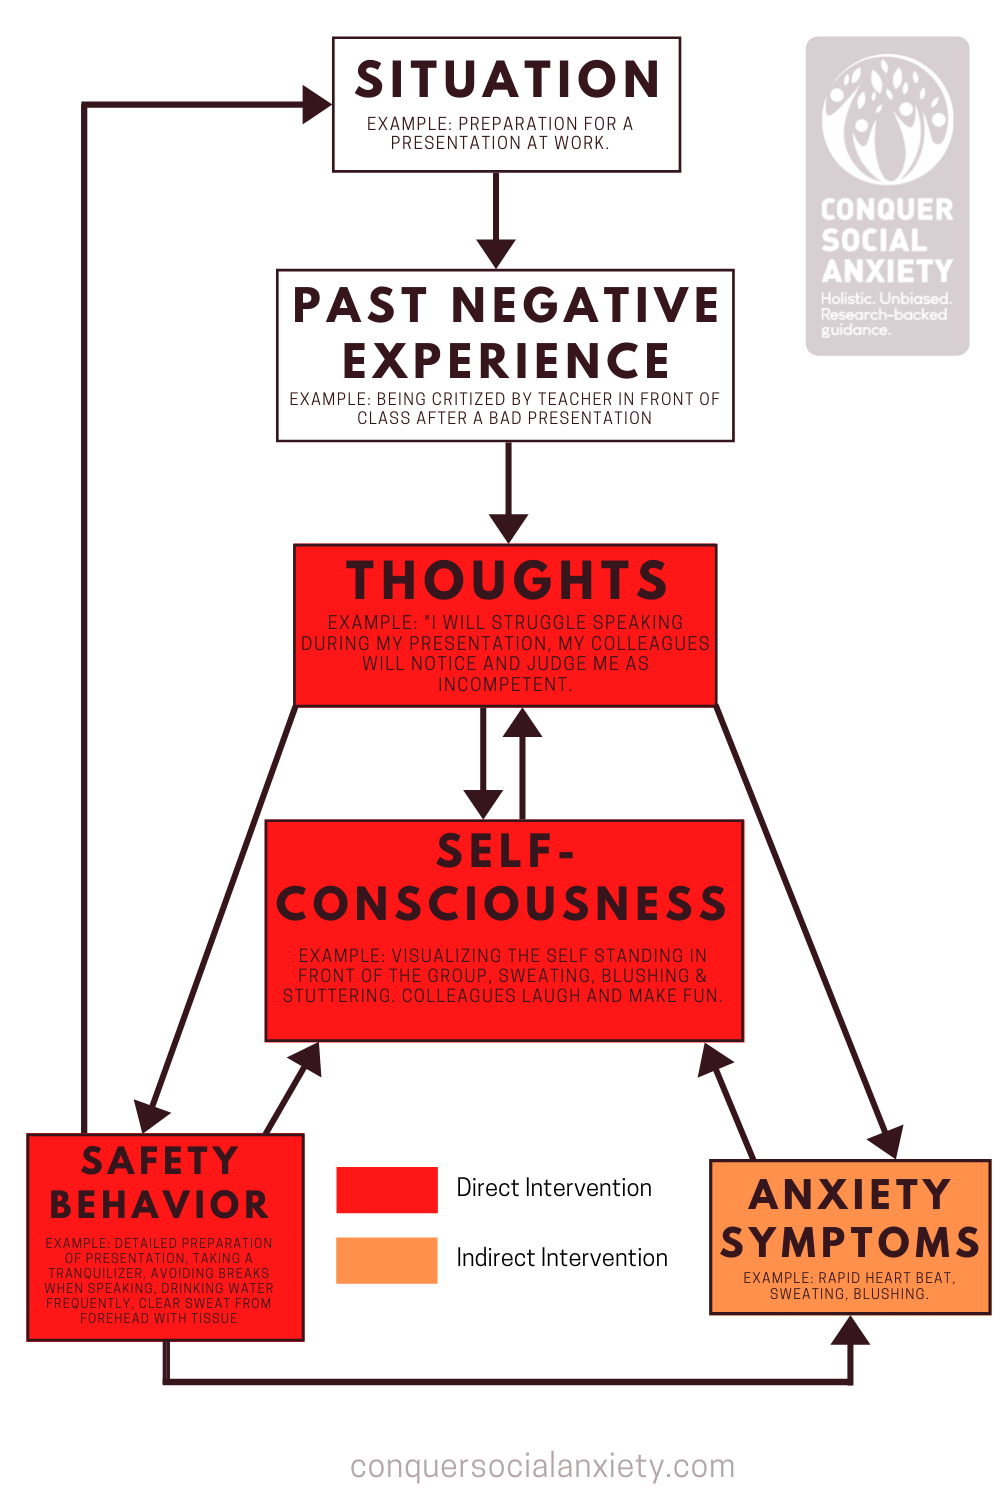 CBT treats social anxiety by addressing negative thoughts, self-consciousness, as well as safety and avoidance behaviors. By doing that, anxiety symptoms can be reduced.